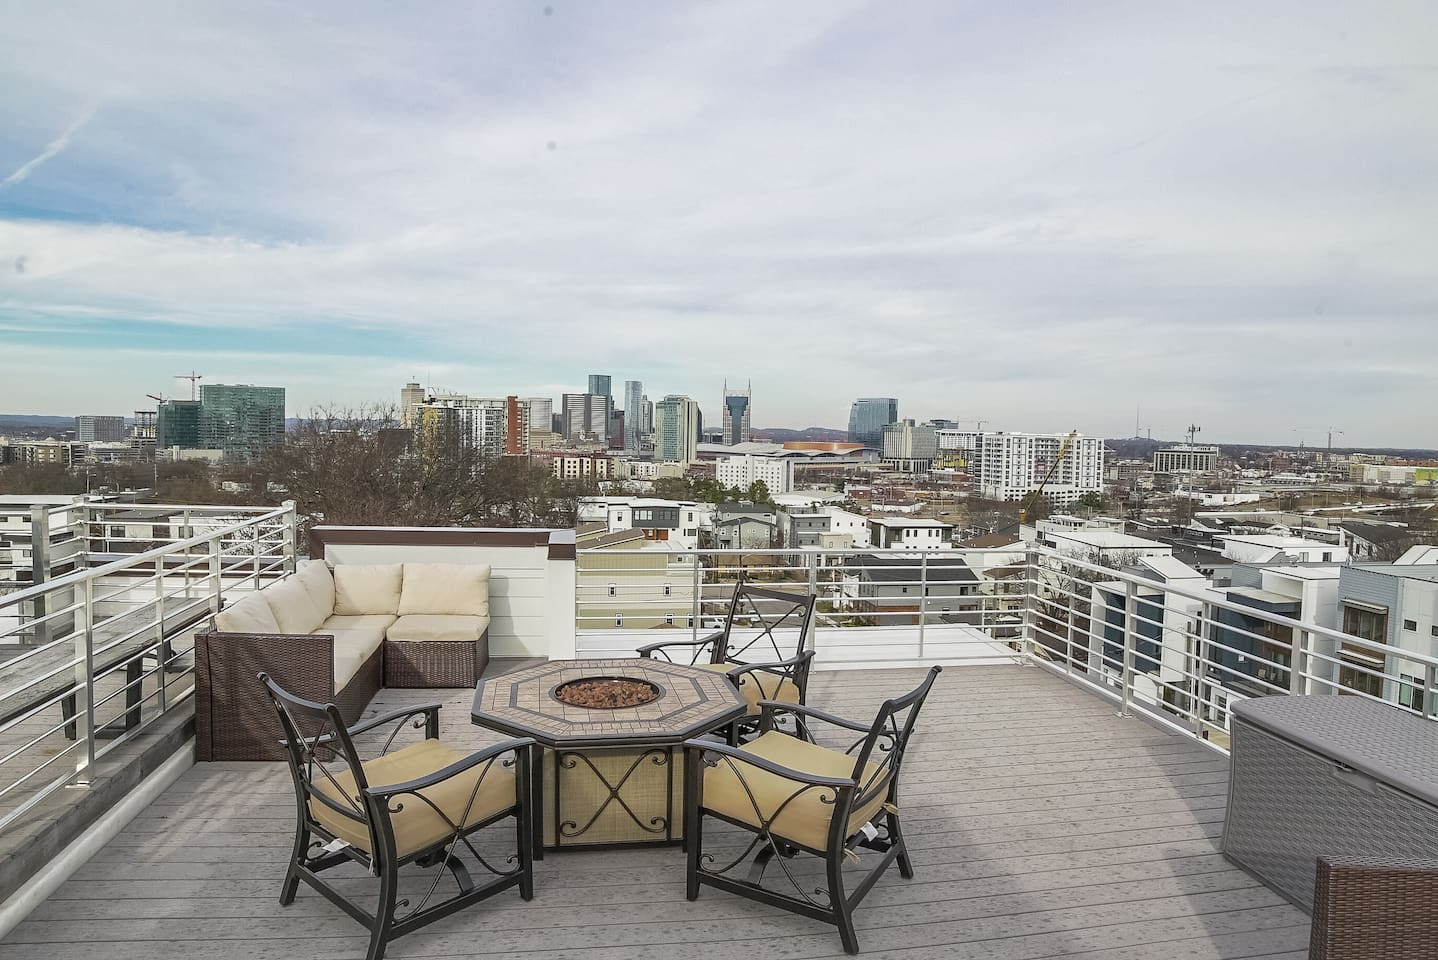 Lots of space on this roof top deck with couch and fire pit while looking at the downtown Nashville skyline and the iconic Batman building.